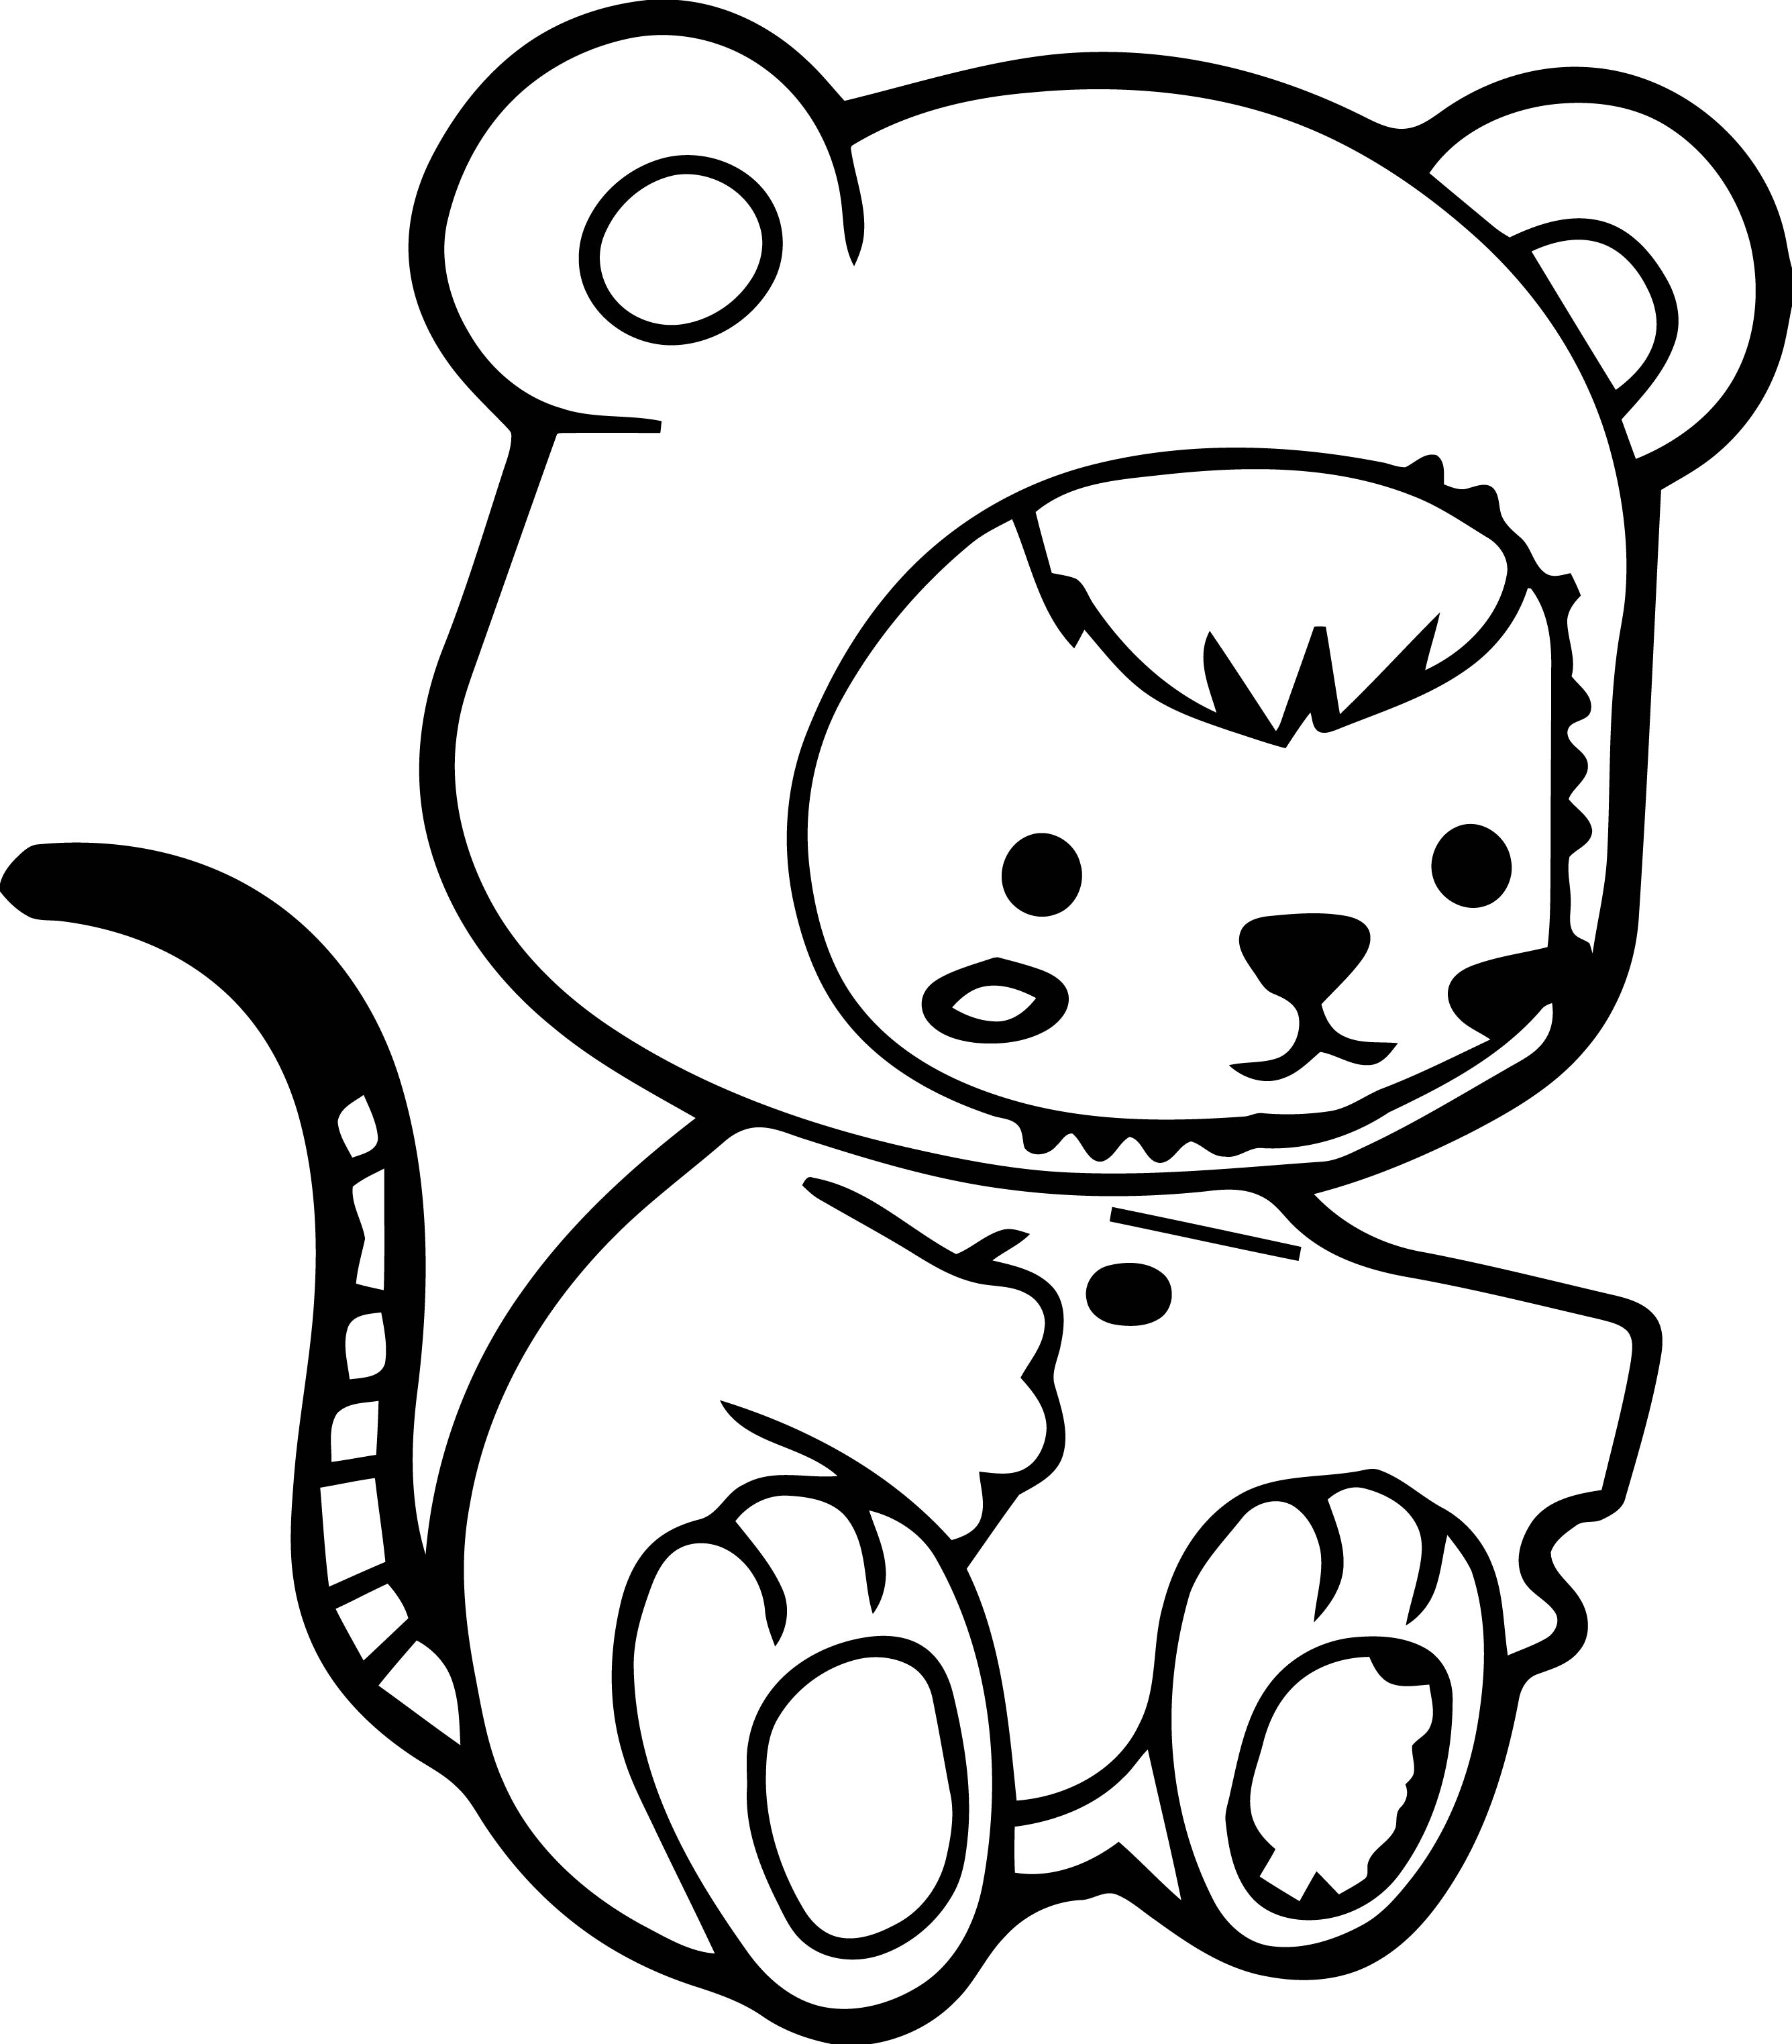 Mouse Jpeg Coloring Page 088